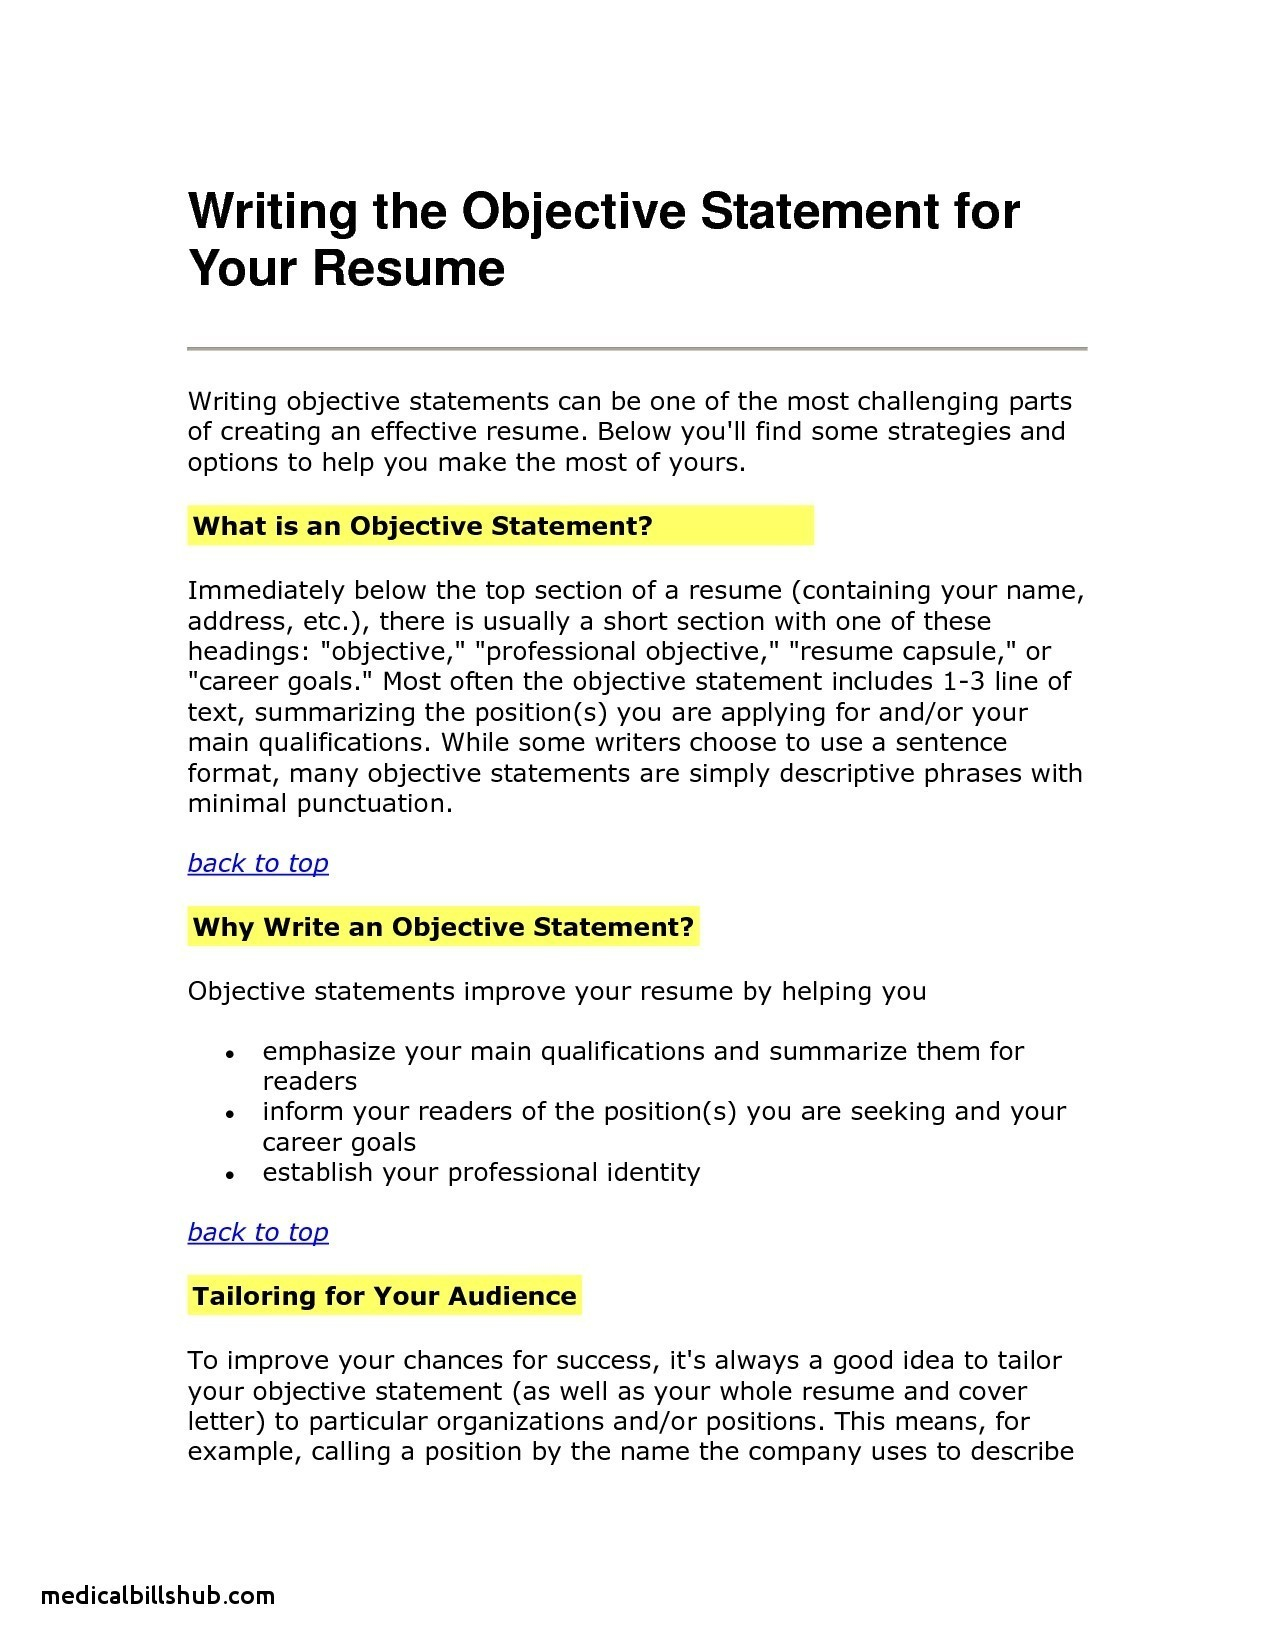 Shoe Store Resume - Production associate Resume – Resume format Examples 2018